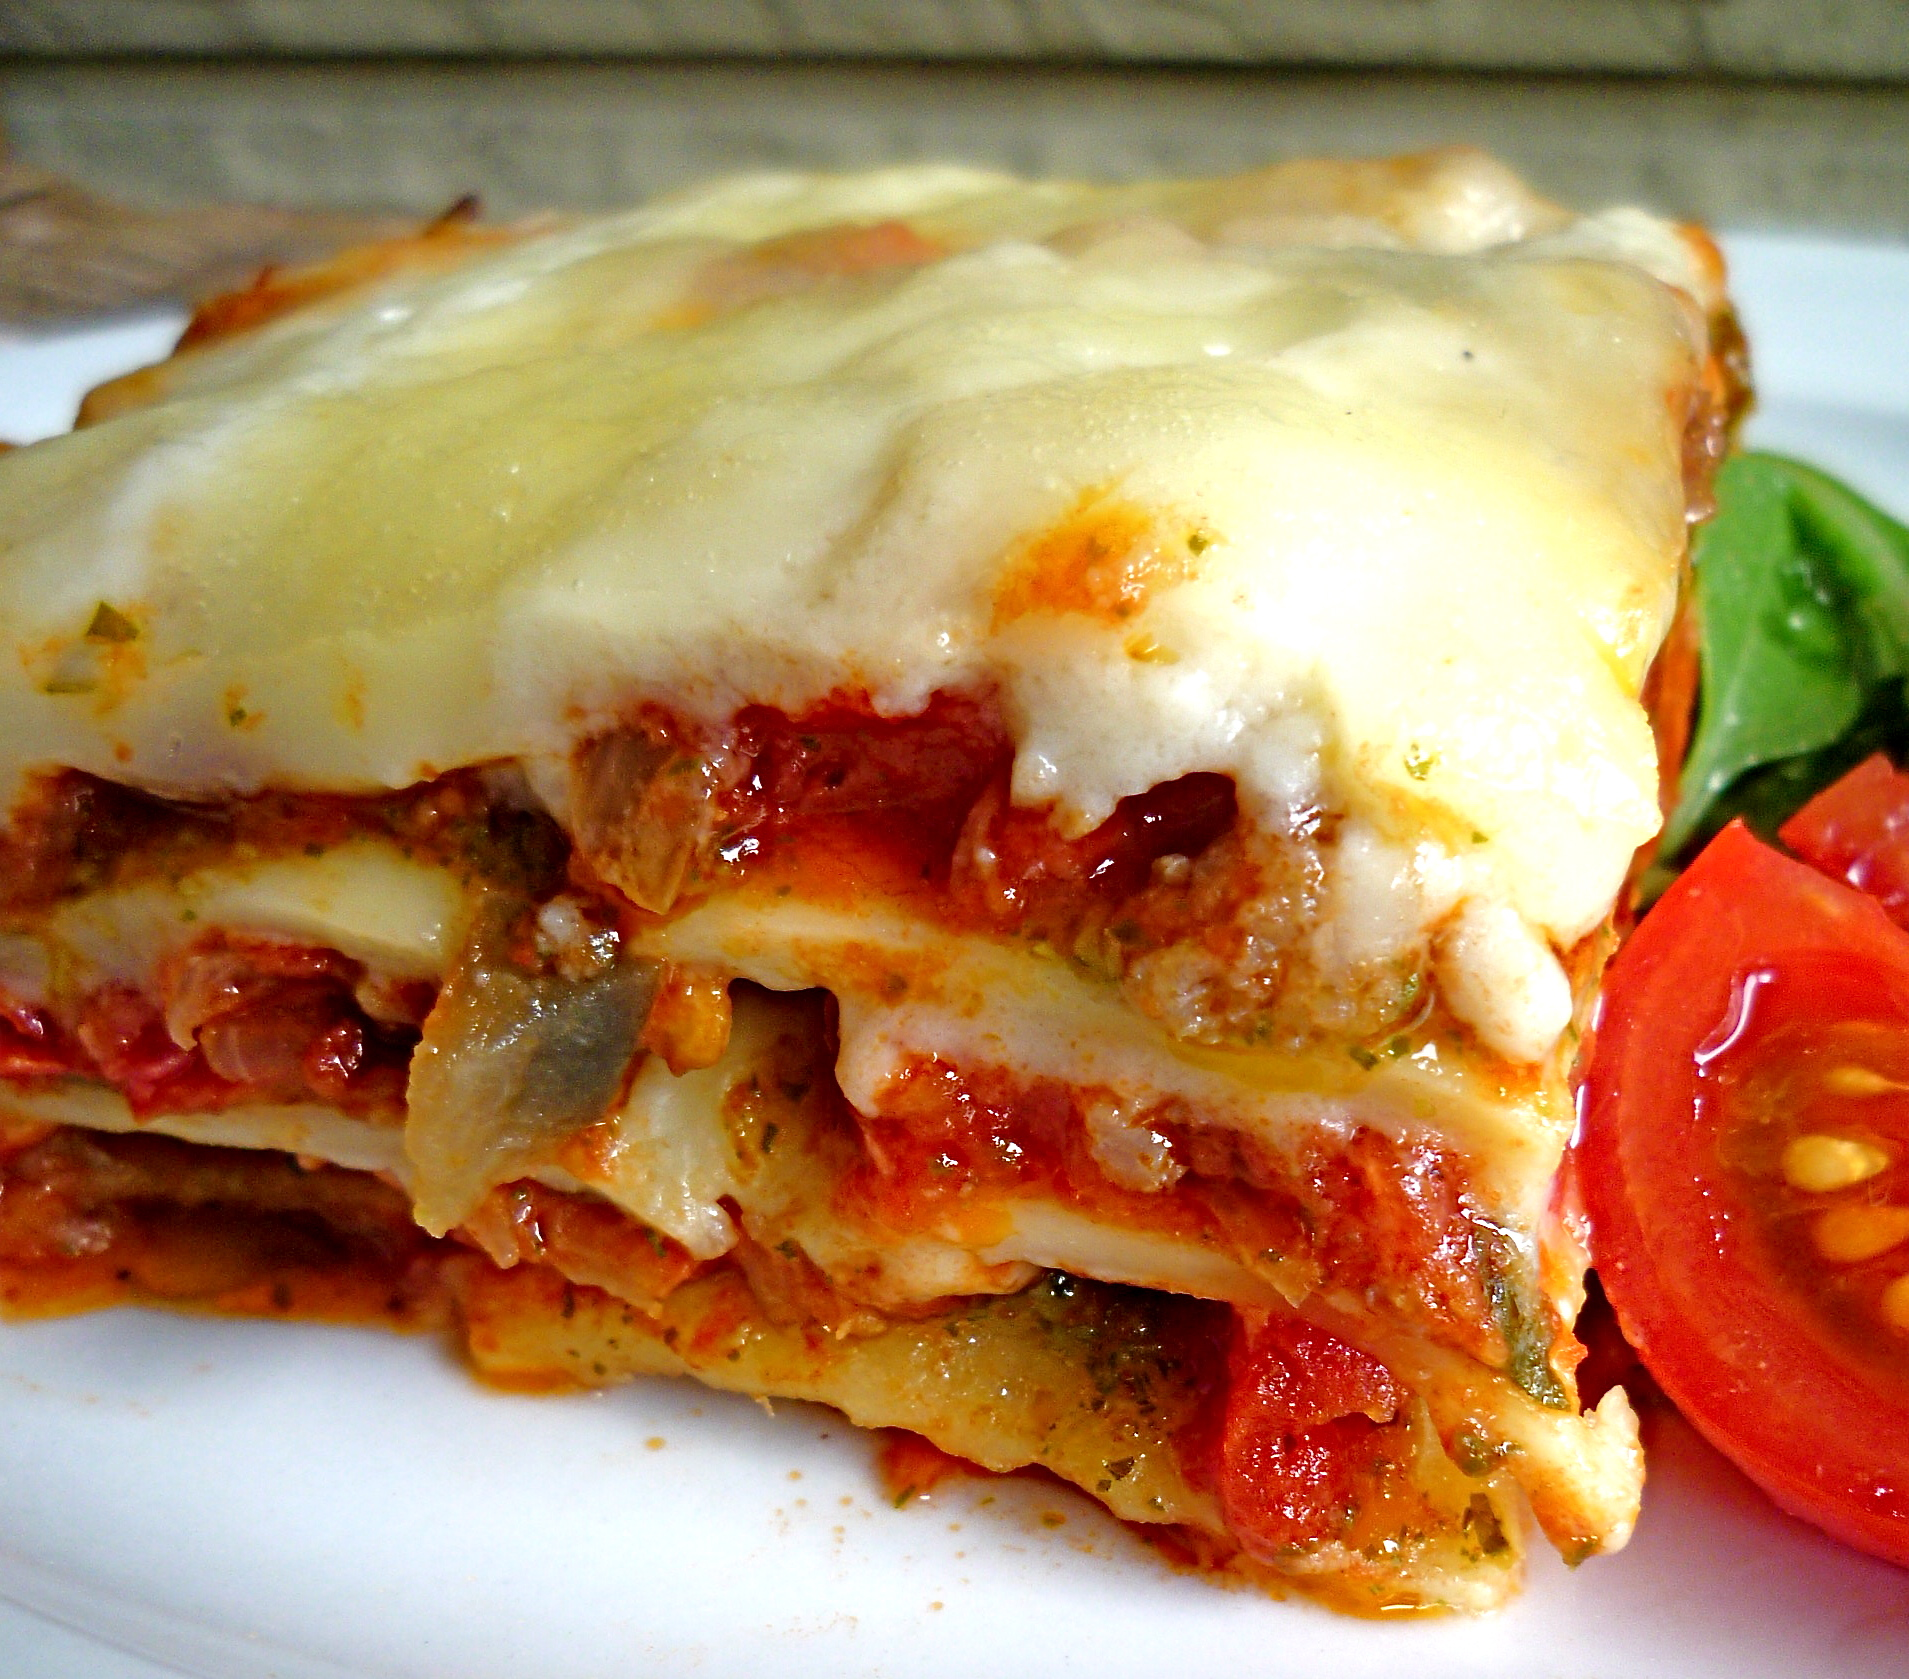 Summer Lasagna with Vegetables, Sausage and Pesto